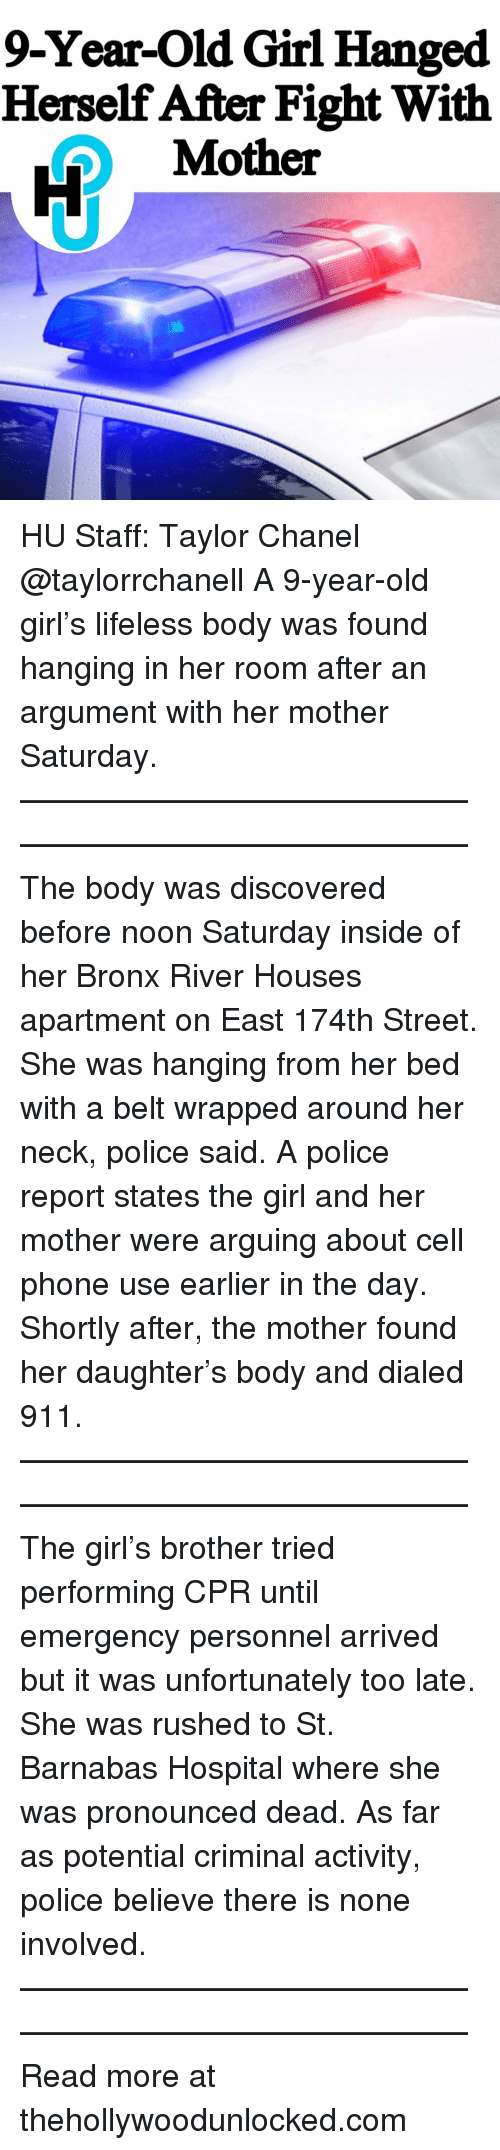 Bronx: 9-Year-Old Girl Hanged  Herself After Fight With  Mother HU Staff: Taylor Chanel @taylorrchanell A 9-year-old girl's lifeless body was found hanging in her room after an argument with her mother Saturday. ———————————————————————————— The body was discovered before noon Saturday inside of her Bronx River Houses apartment on East 174th Street. She was hanging from her bed with a belt wrapped around her neck, police said. A police report states the girl and her mother were arguing about cell phone use earlier in the day. Shortly after, the mother found her daughter's body and dialed 911. ———————————————————————————— The girl's brother tried performing CPR until emergency personnel arrived but it was unfortunately too late. She was rushed to St. Barnabas Hospital where she was pronounced dead. As far as potential criminal activity, police believe there is none involved. ———————————————————————————— Read more at thehollywoodunlocked.com